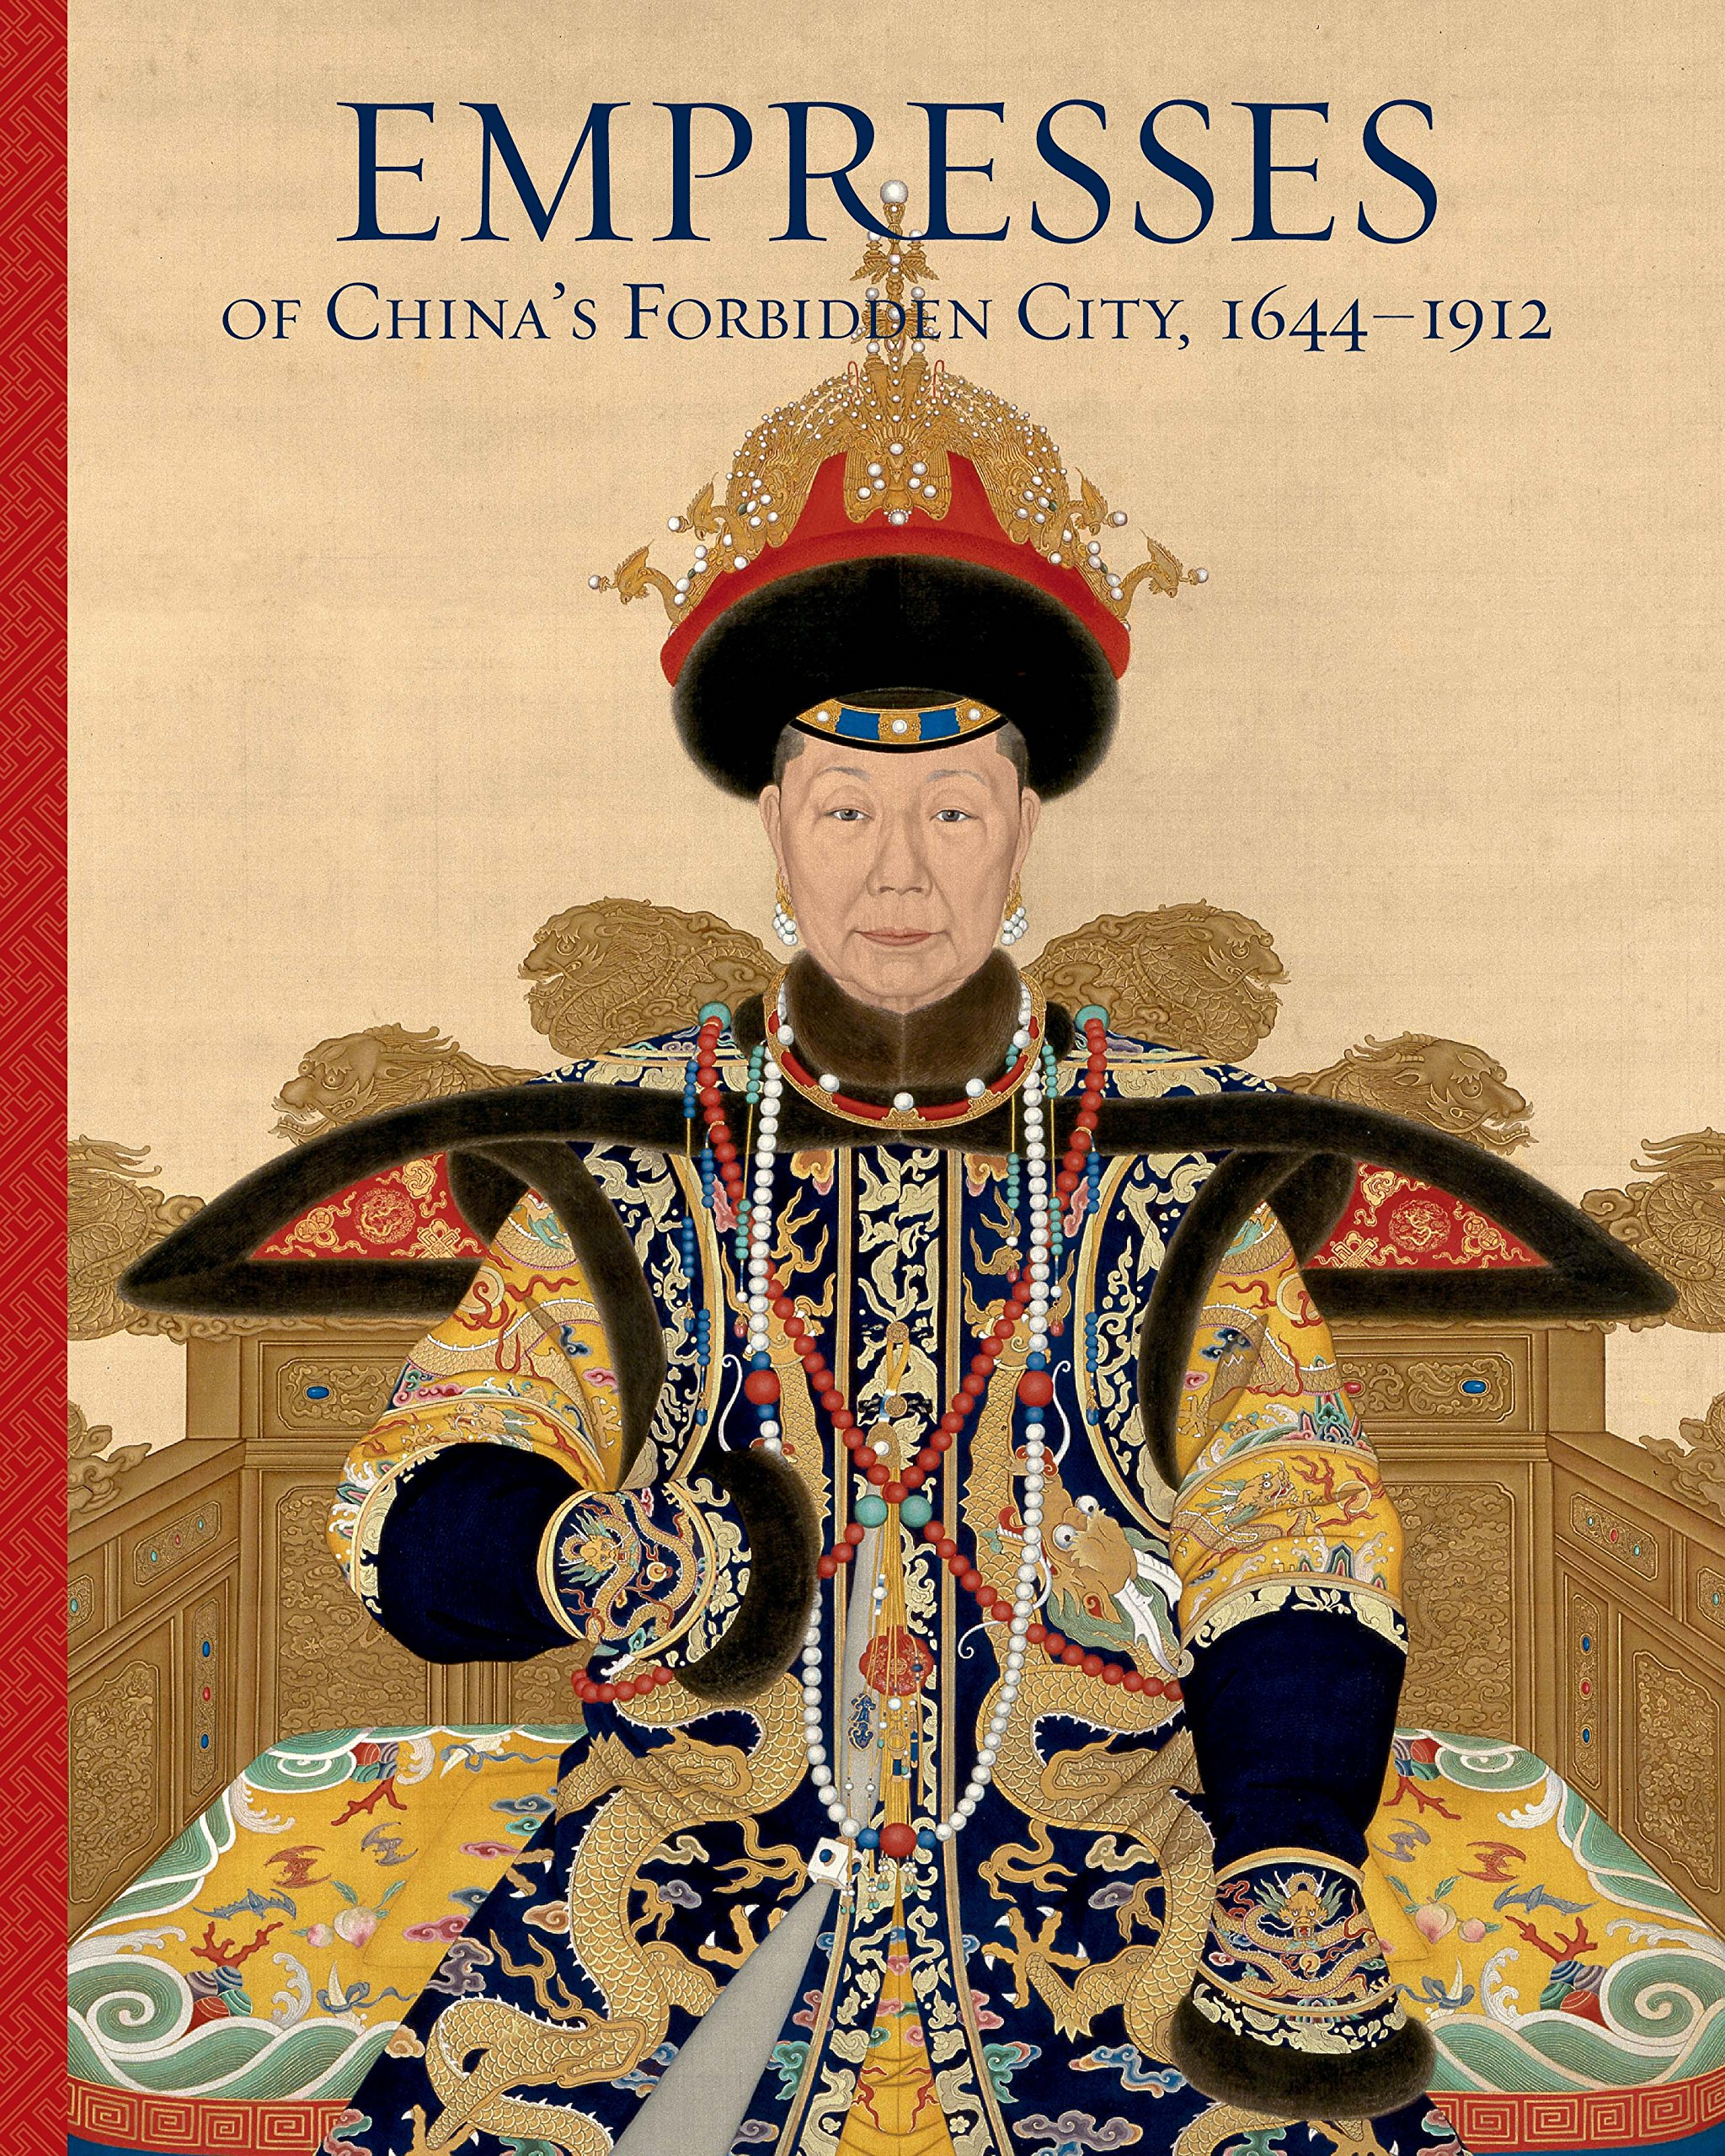 Empresses of China's Forbidden City, 1644-1912: Daisy Yiyou Wang, Jan  Stuart, Lin Shu, Luk Yu-ping, Ying-chen Peng, Evelyn S. Rawski, Ren  Wanping: ...